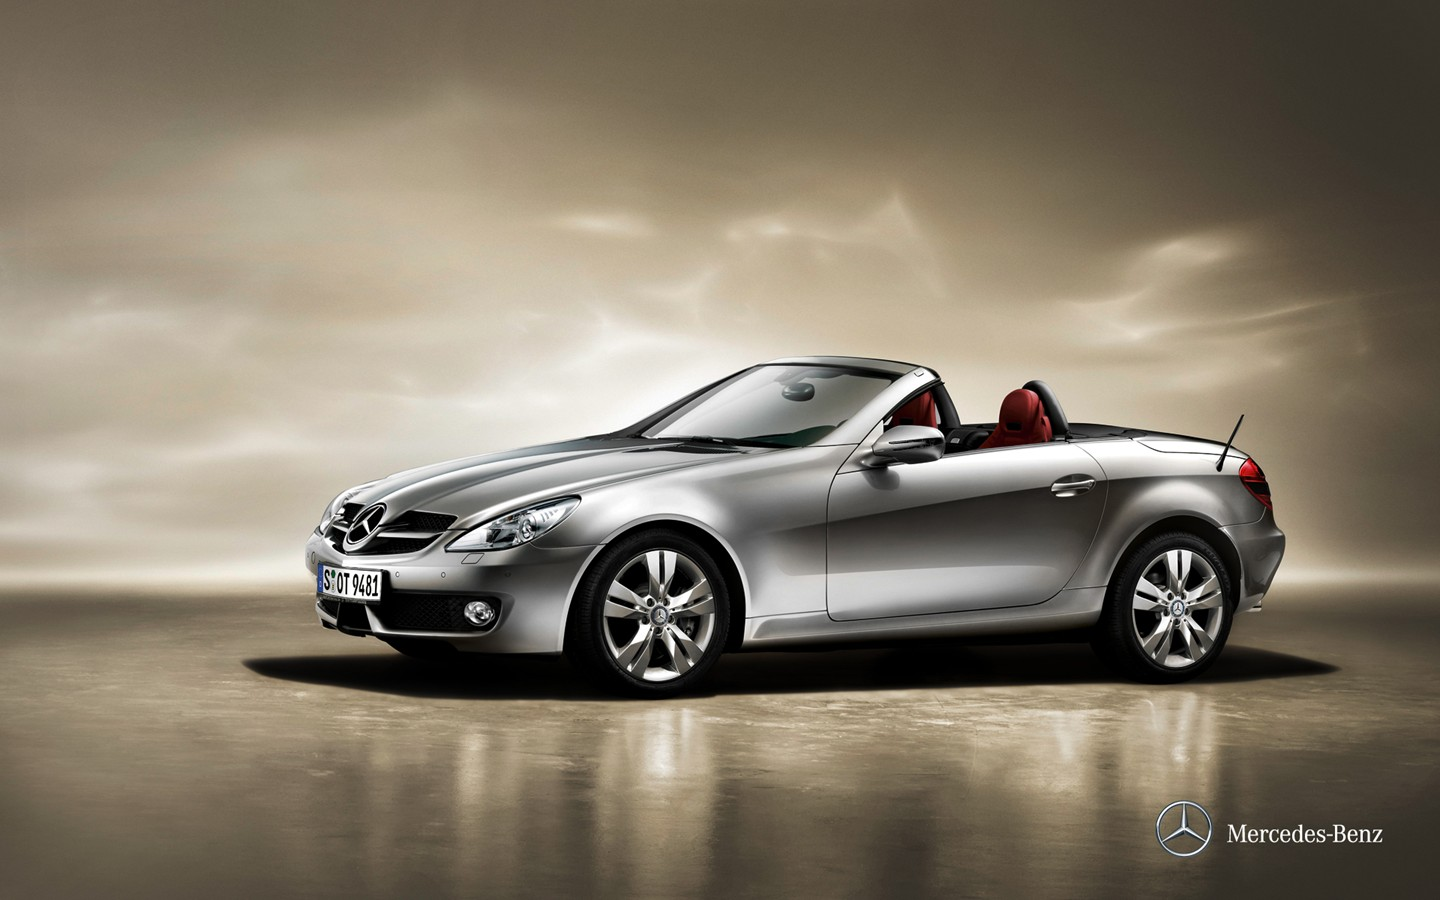 Mercedes-Benz SLK roadster 32014